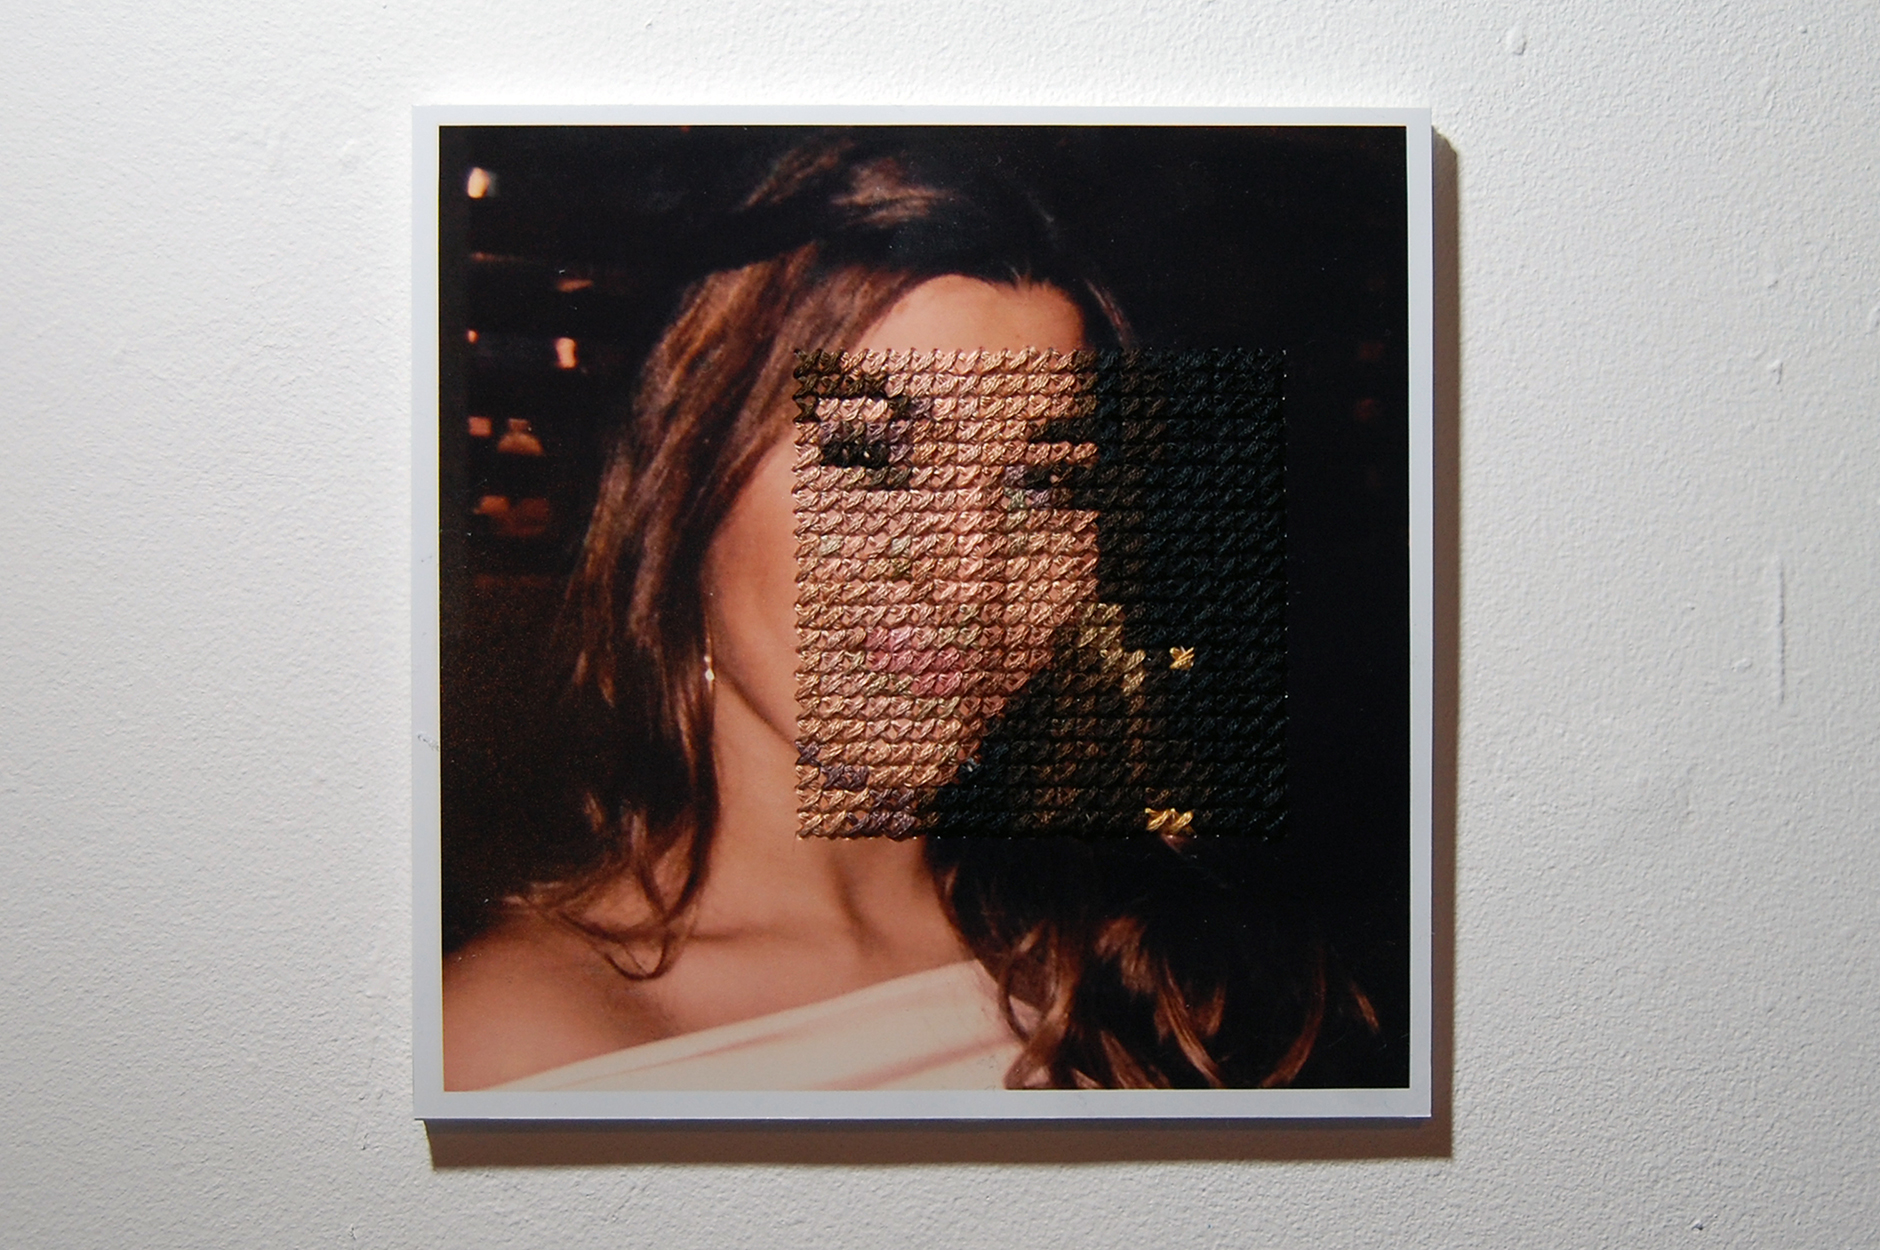 Embroidered Photographs as Contemporary Art